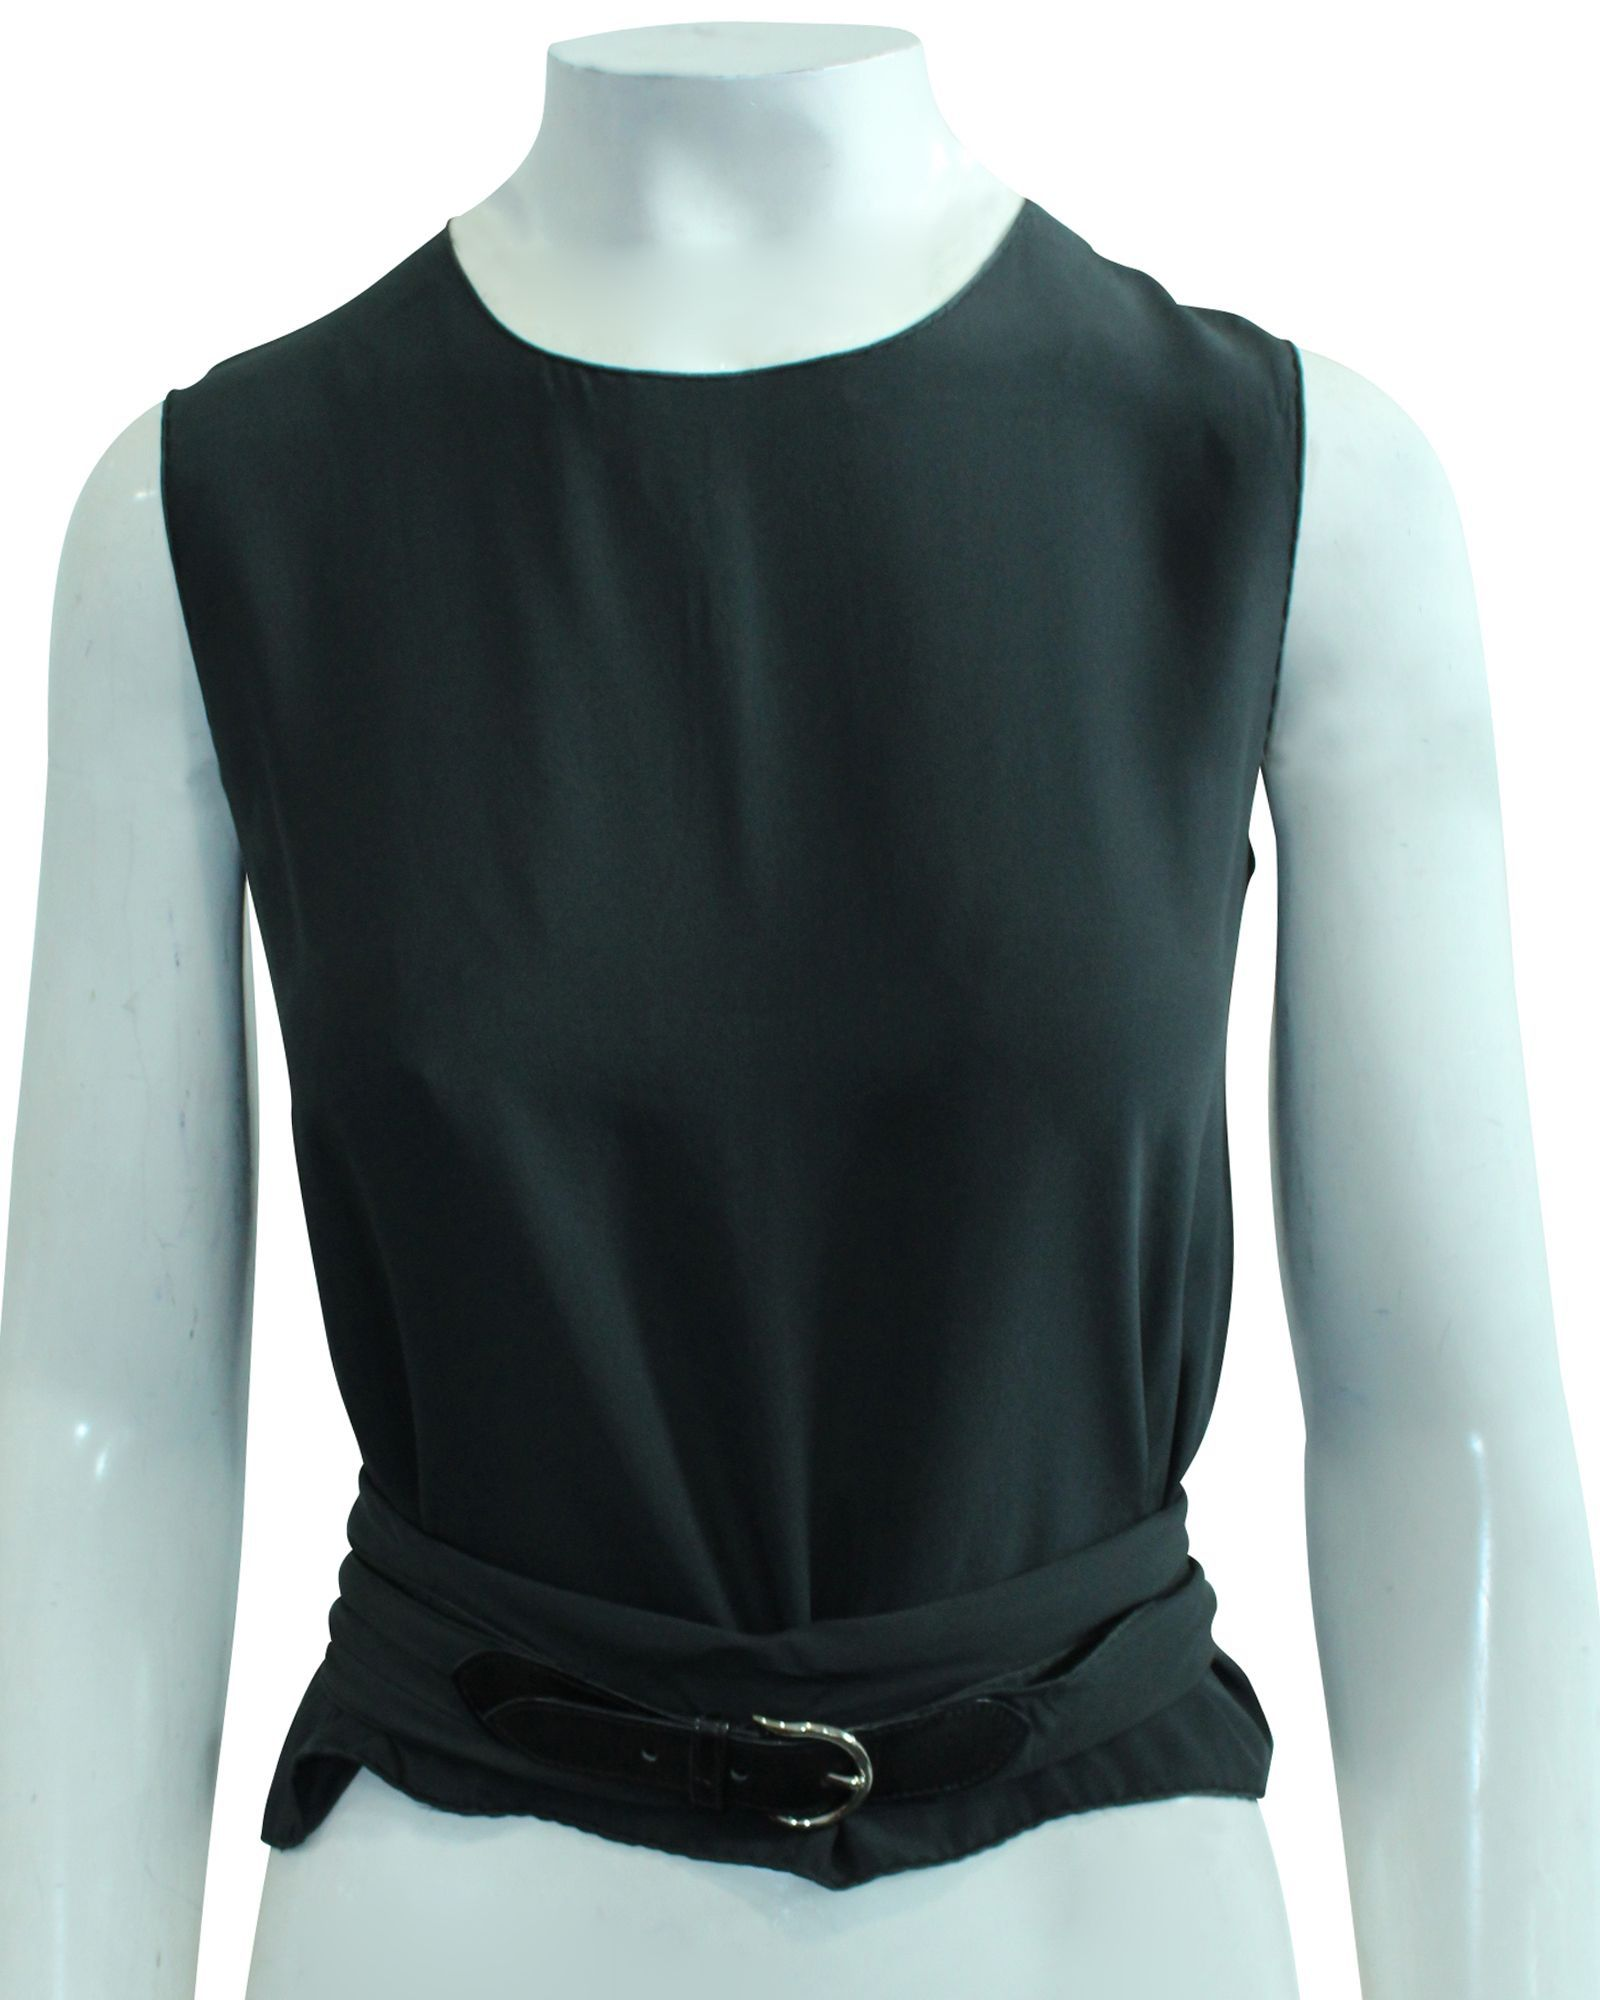 Hermès Charcoal Silk Twill Top With Silk/Leather Belt -Pre Owned Condition Very Good